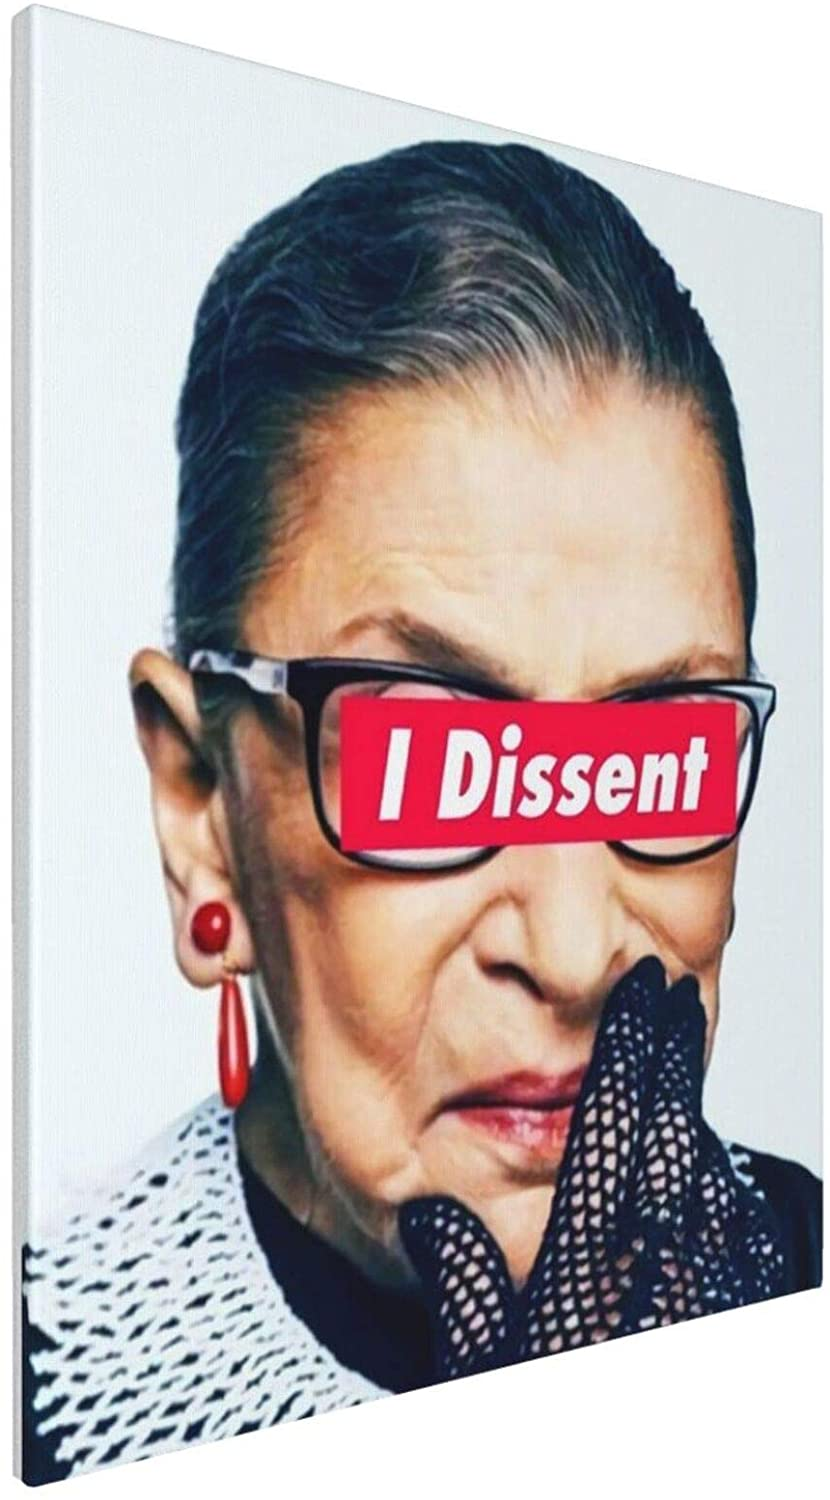 RBG Ruth Bader Ginsburg - I Dissent - Notorious Tasteless 3d Oil Painting Large Canvas Wall Art Decor For Dining Room 16x20 Inch